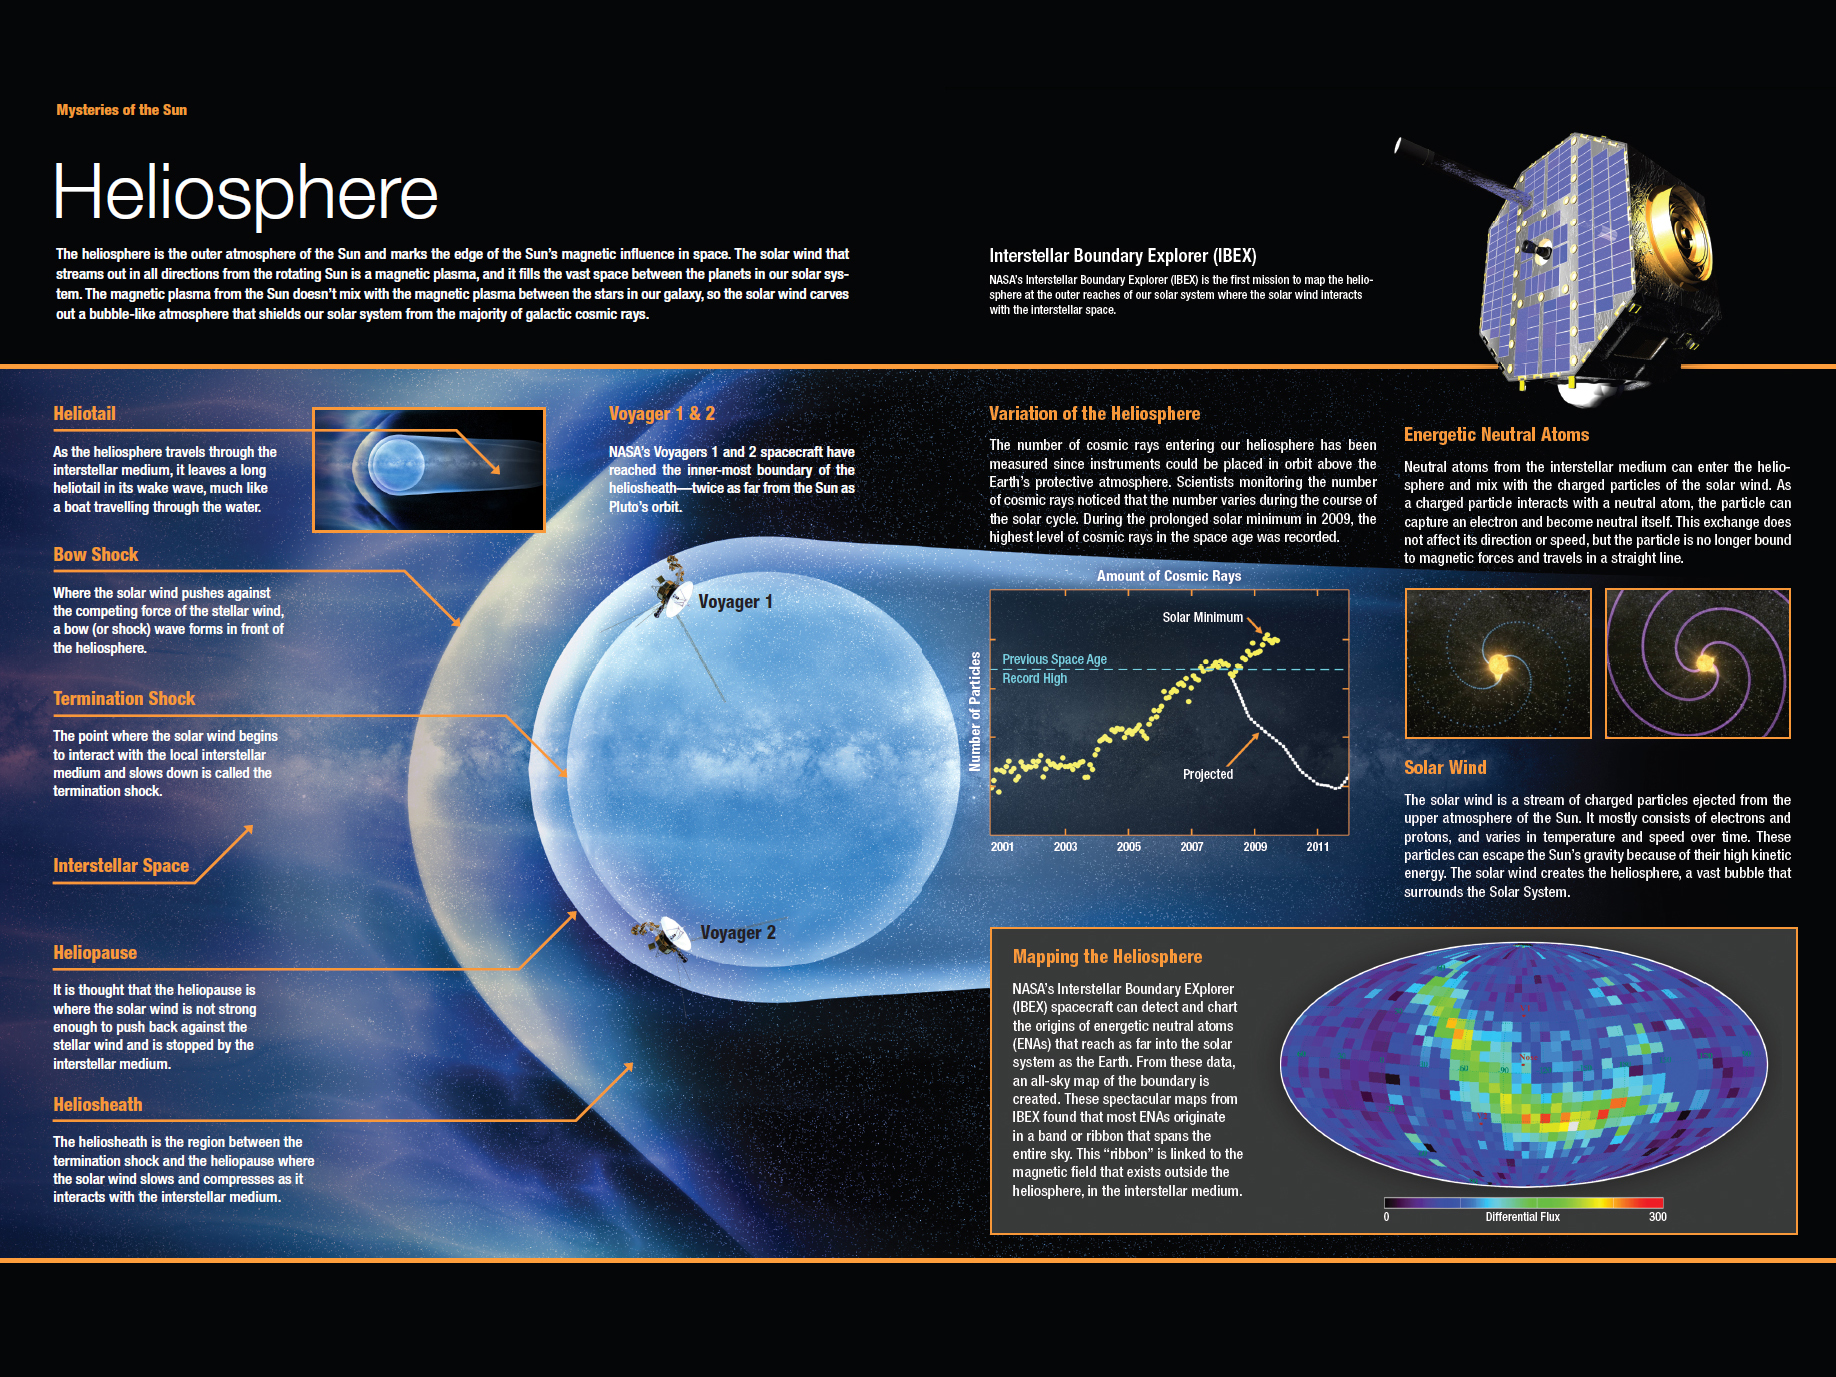 Components Of The Heliosphere